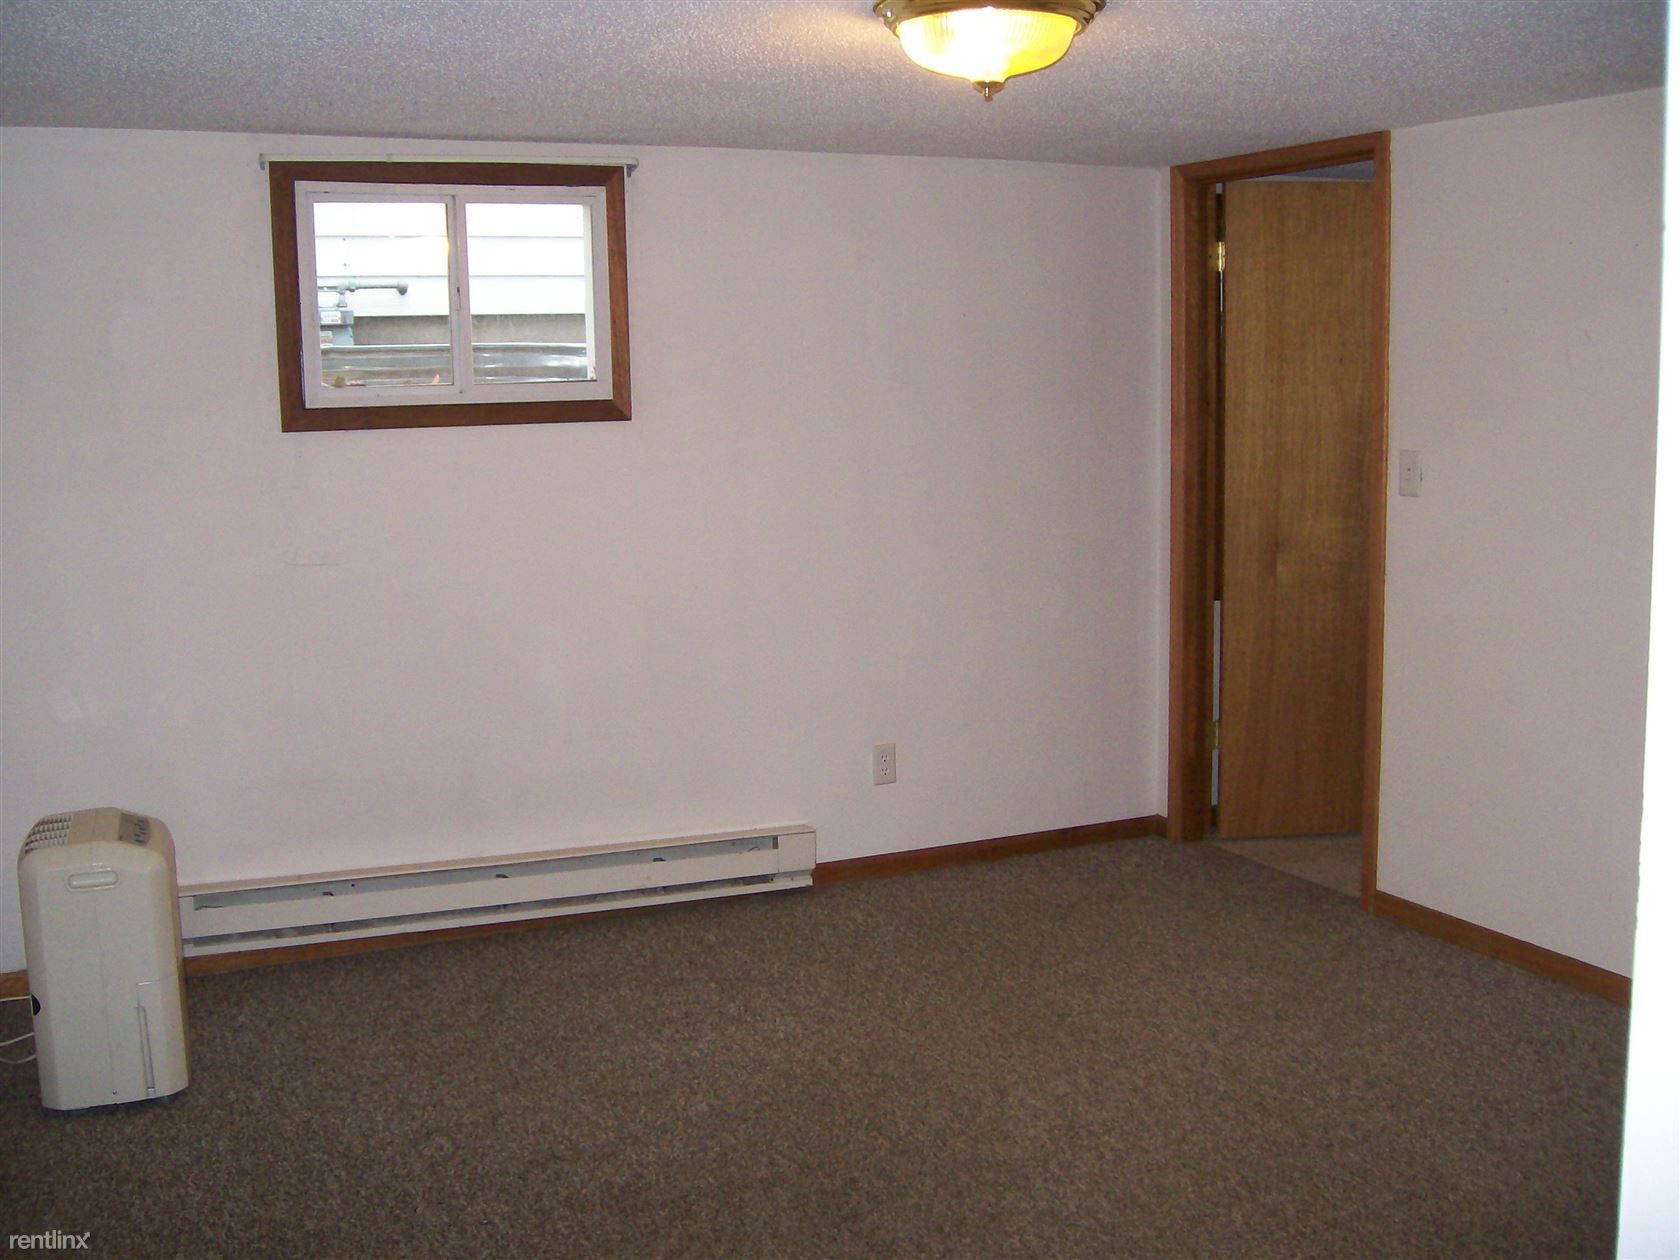 519 N 6th St Apt 3, Grand Forks, ND - 450 USD/ month